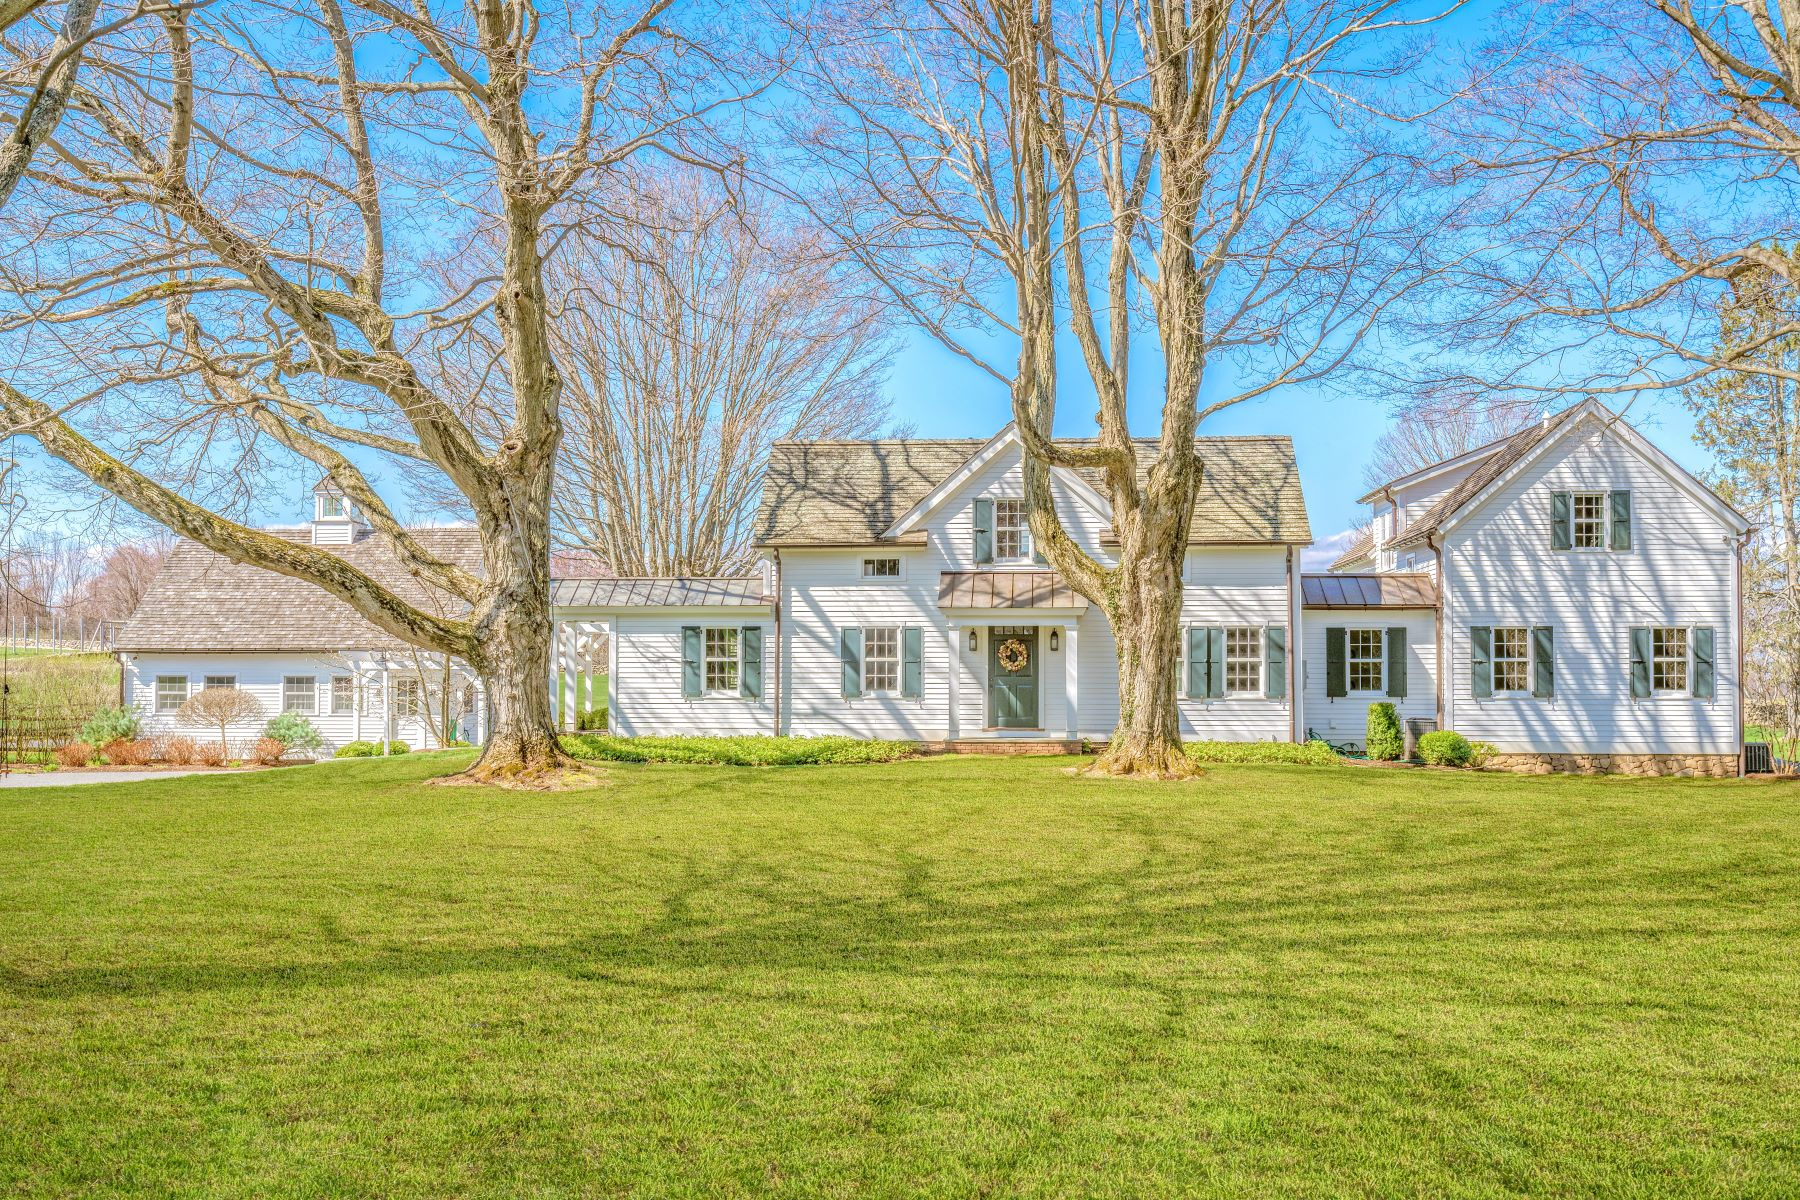 Single Family Homes for Sale at C.1872 O'Brien Homestead 238 Painter Hill Road Roxbury, Connecticut 06783 United States